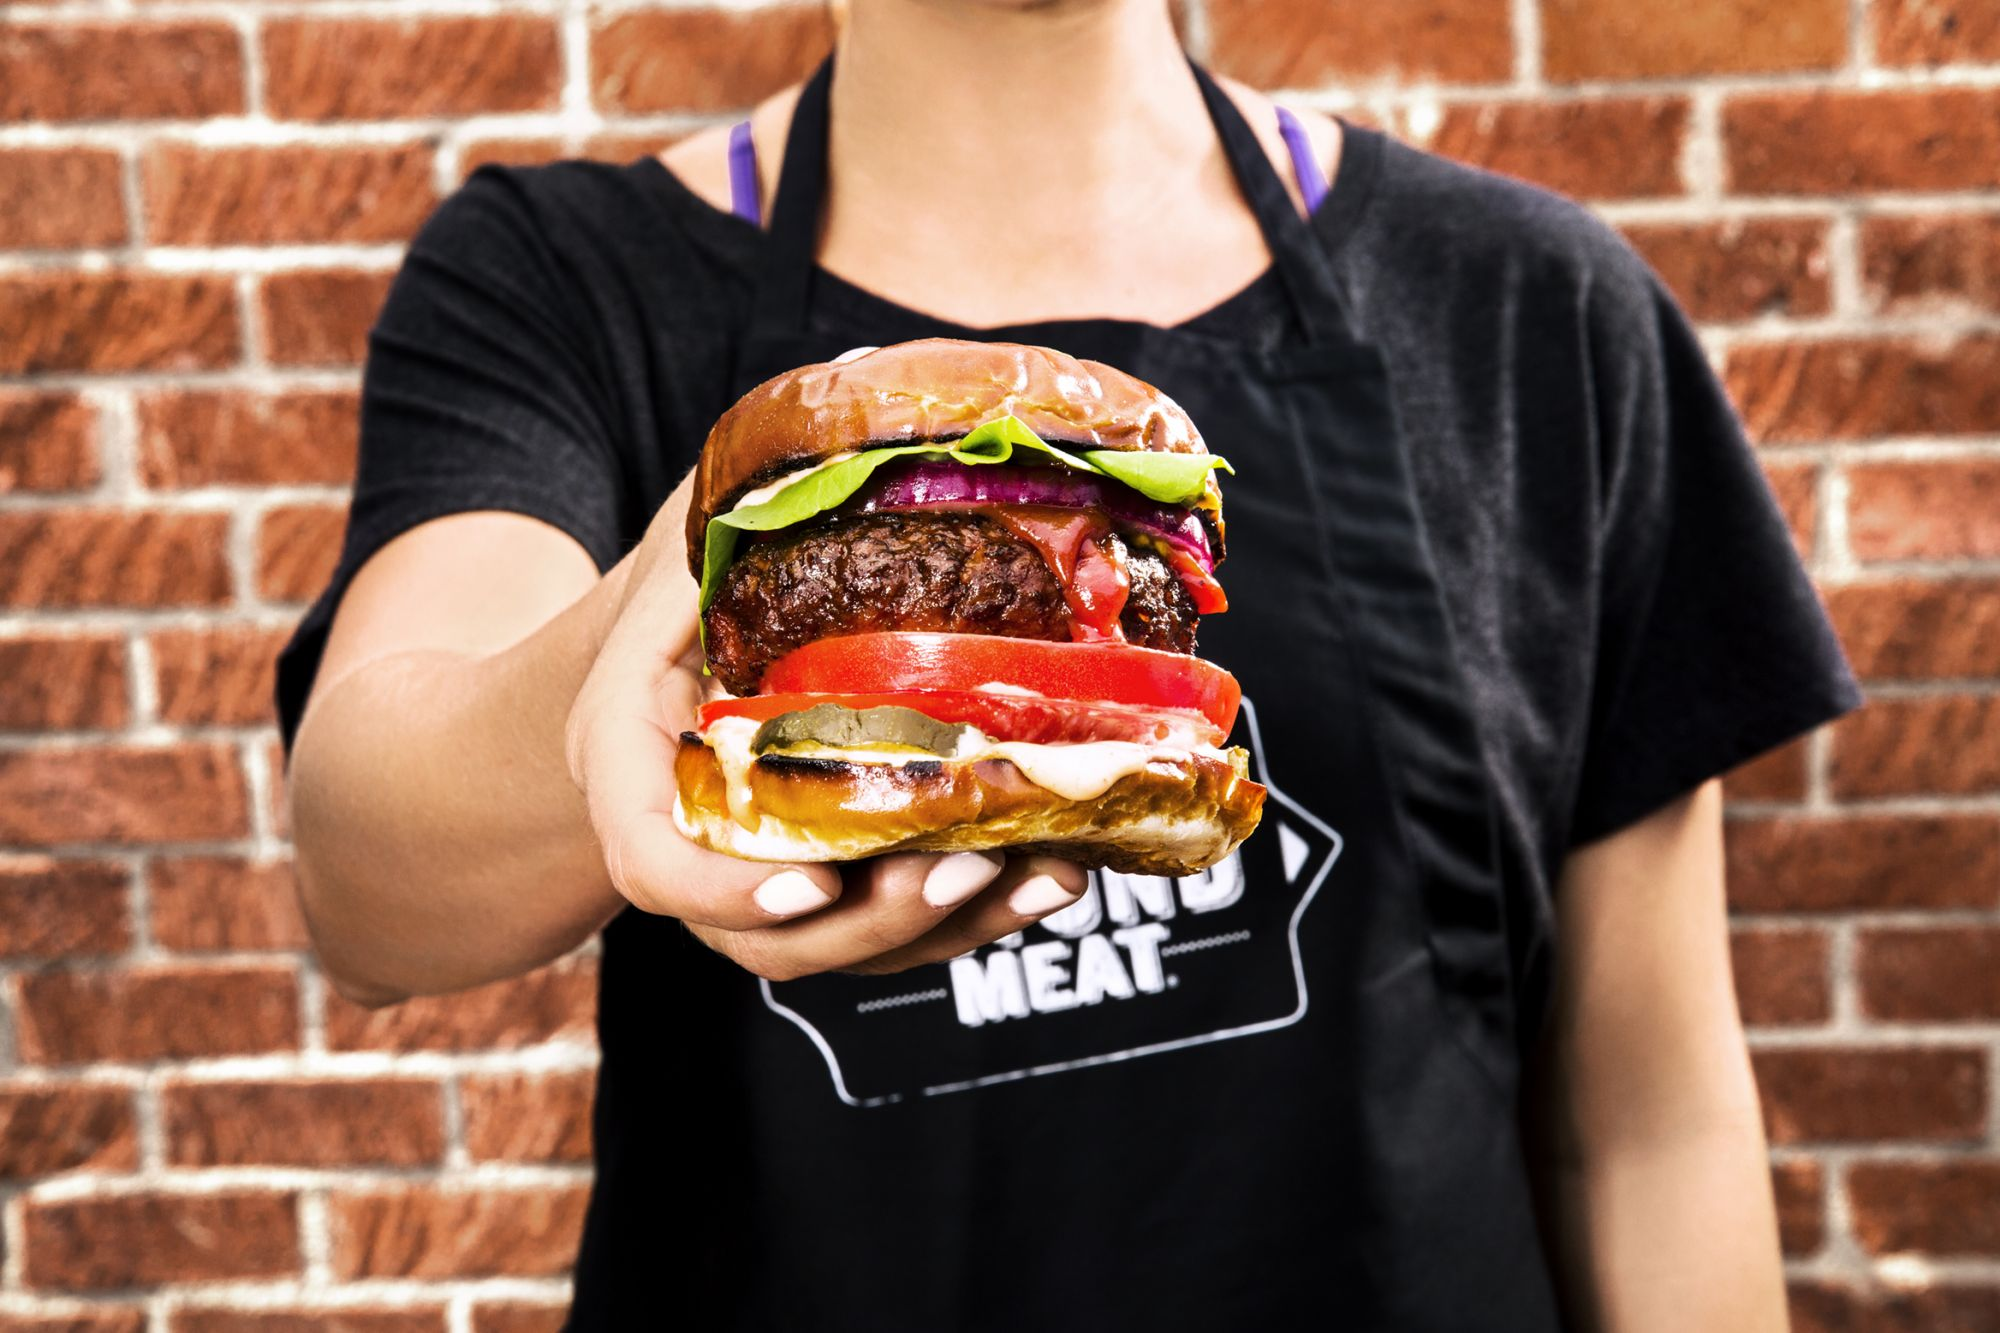 5 Lessons for Food Startups From Beyond Meat's Stunning Success